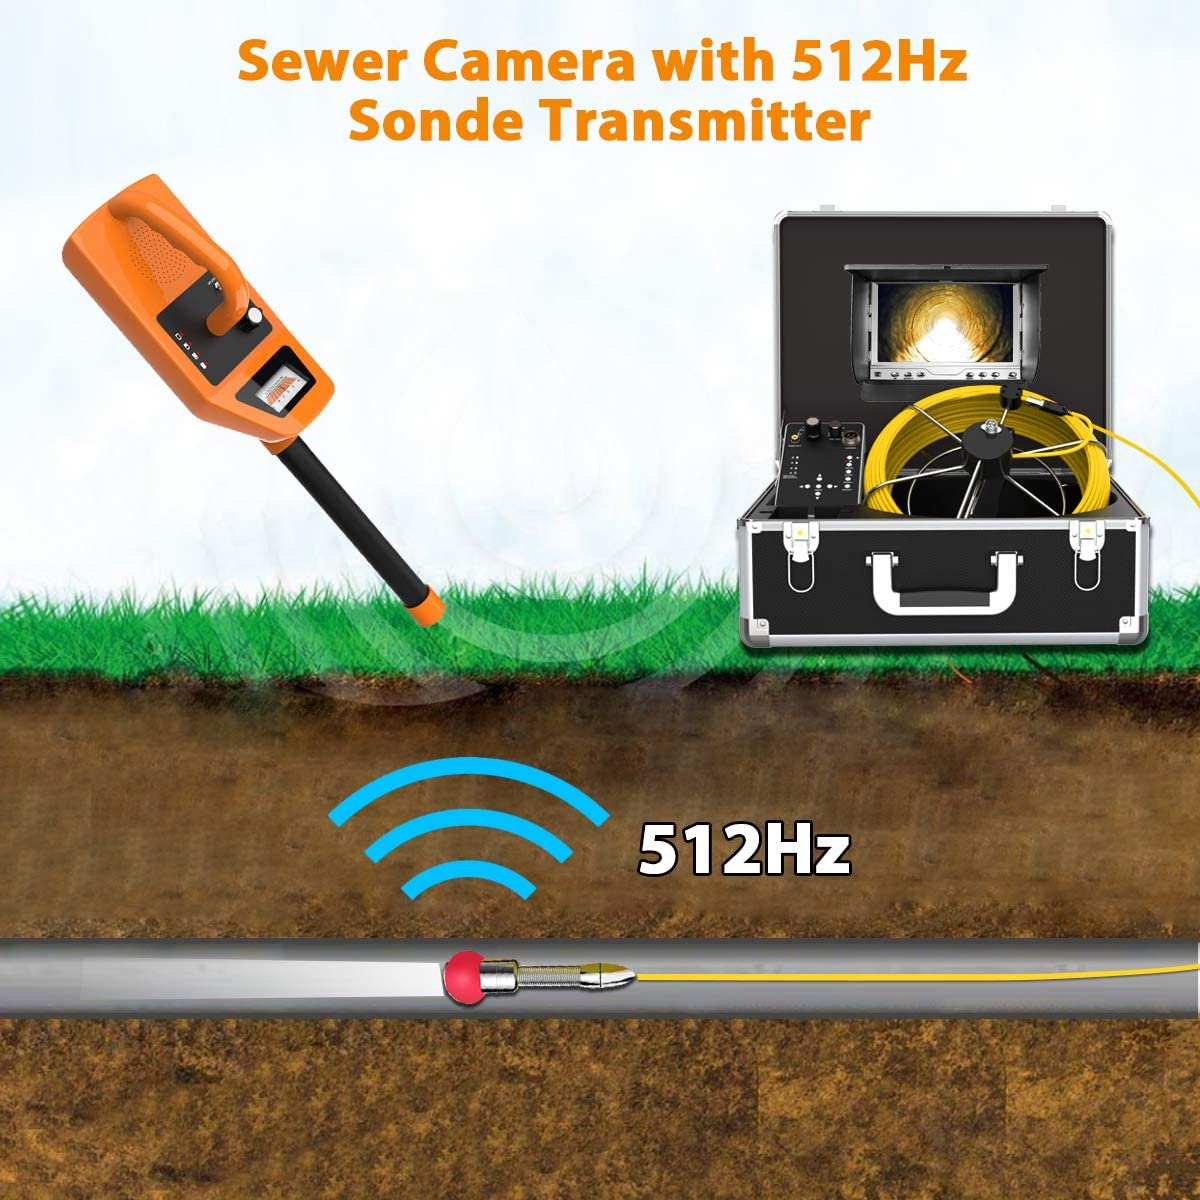 """512Hz Transmitter Sonde for Pipe Location Endoscope Camera 7/""""LCD DVR Screen Plumbing Borescope Inspection Camera IP68 Waterproof Drain Snake 100FT Cable Include 512Hz Receiver Sewer Camera"""